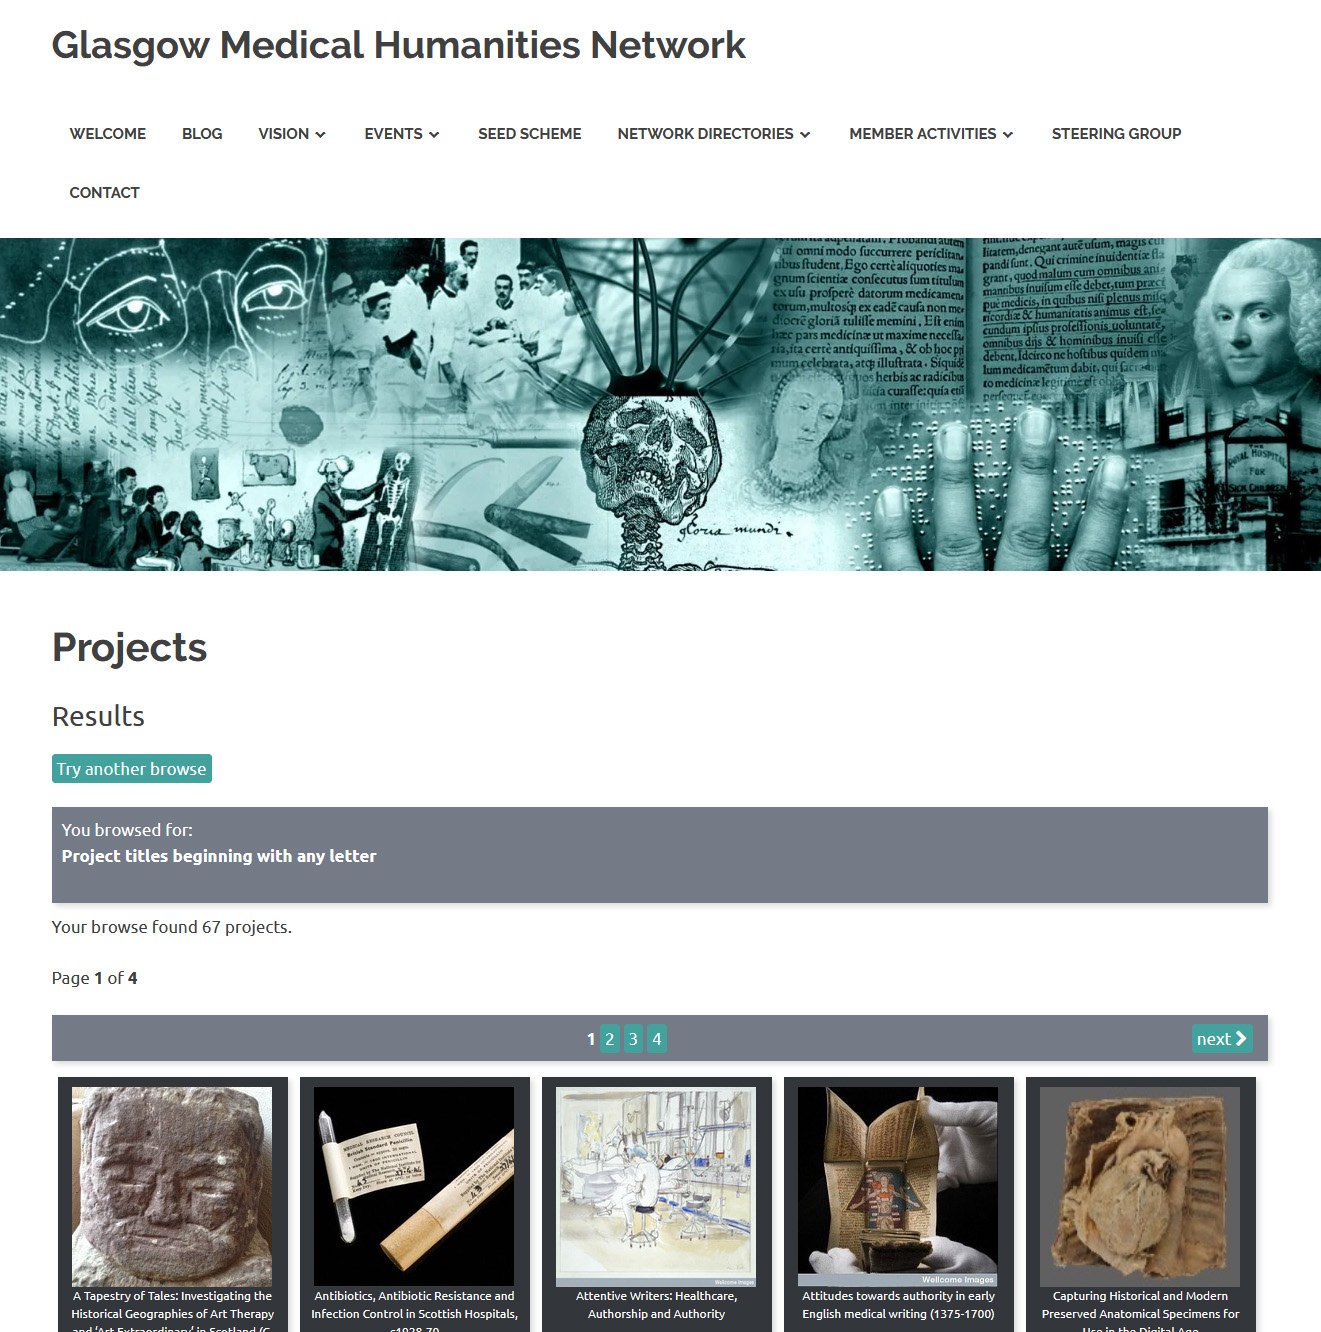 A page from the database of medical humanities projects